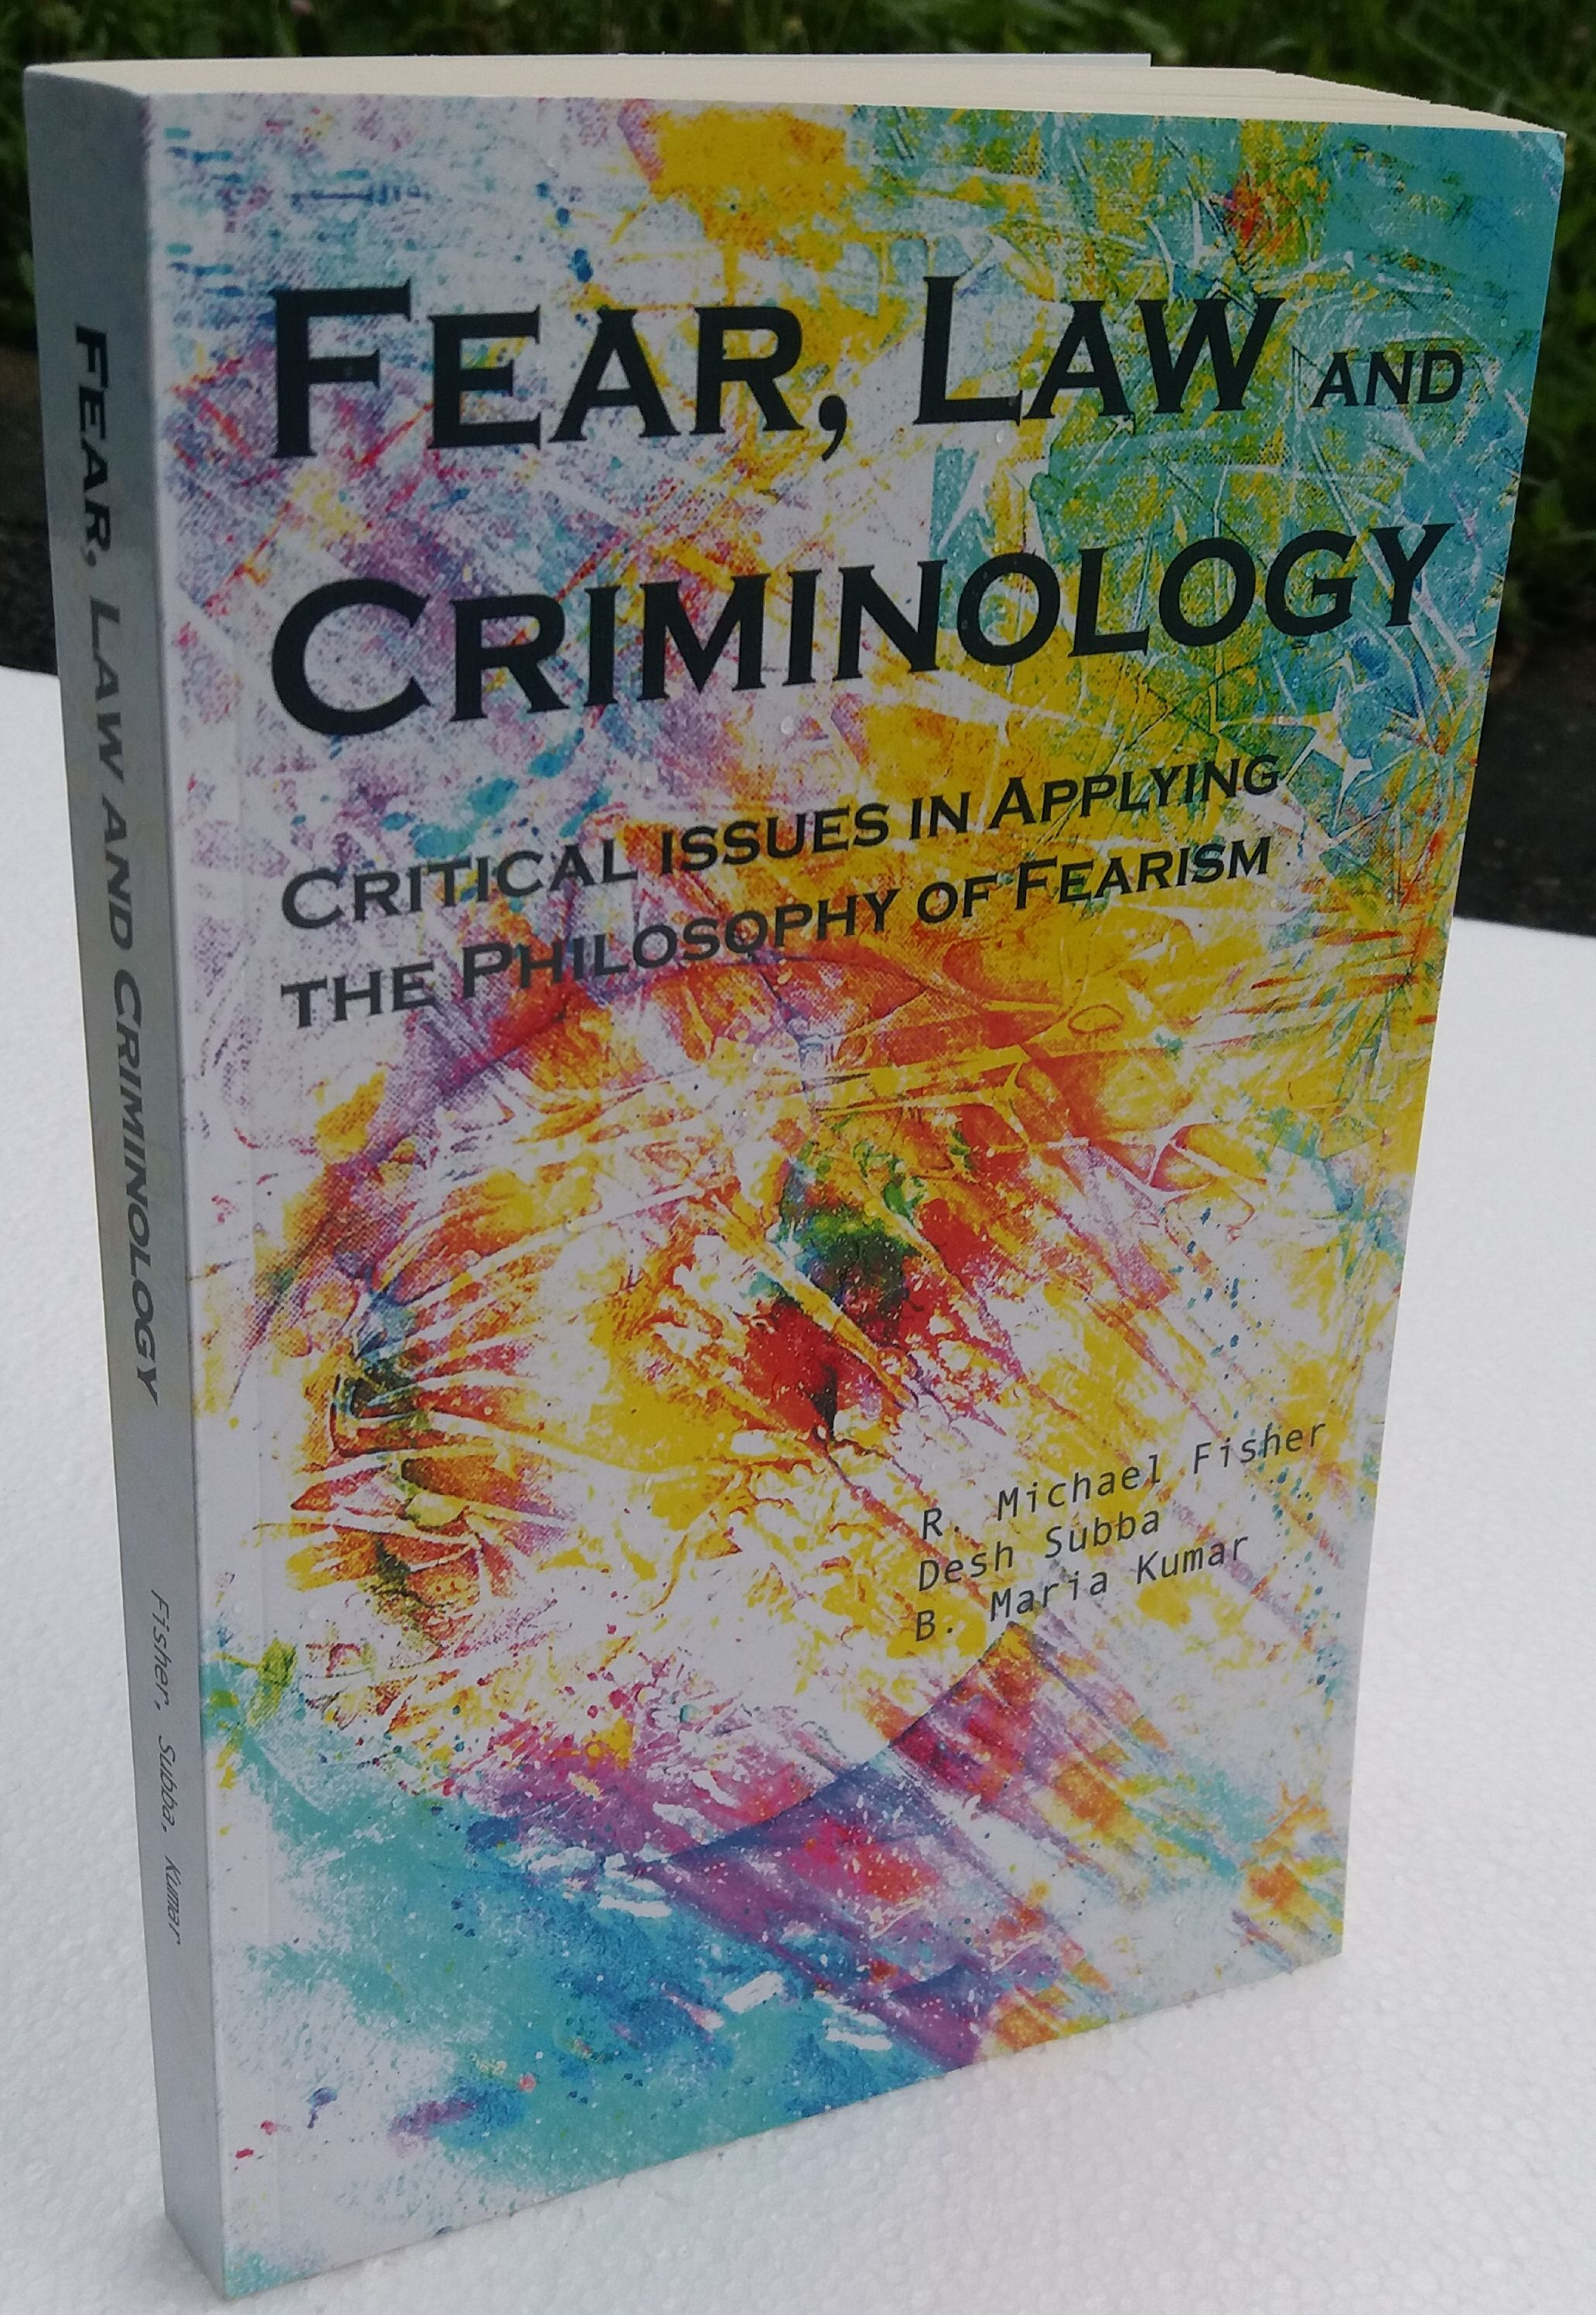 Fear Law And Criminology Critical Issues In Applying The Philosophy Of Fearism Psychology Books Self Development Books Inspirational Books